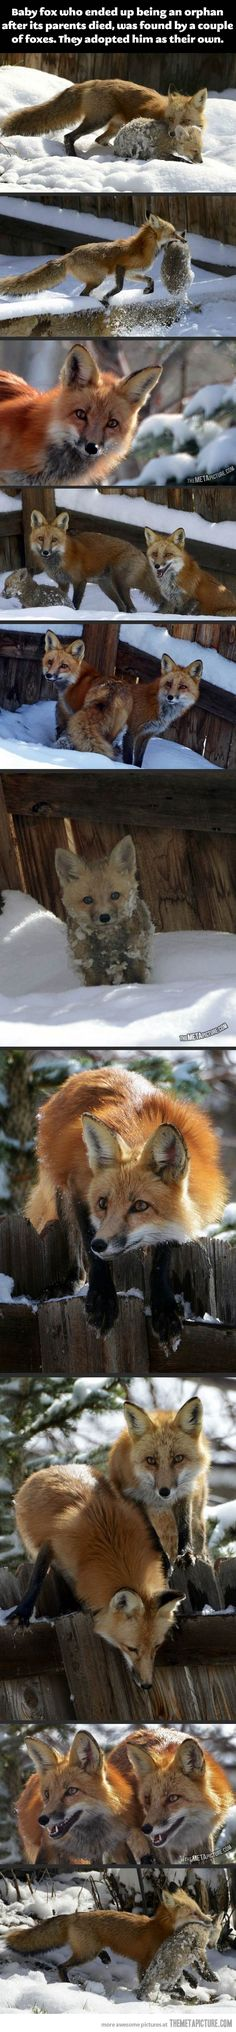 """All i can think of is my cousin when she finds scarfs, sunglasses, etc. left by her friends and goes """"this is mine now."""" The foxes are adorable too."""